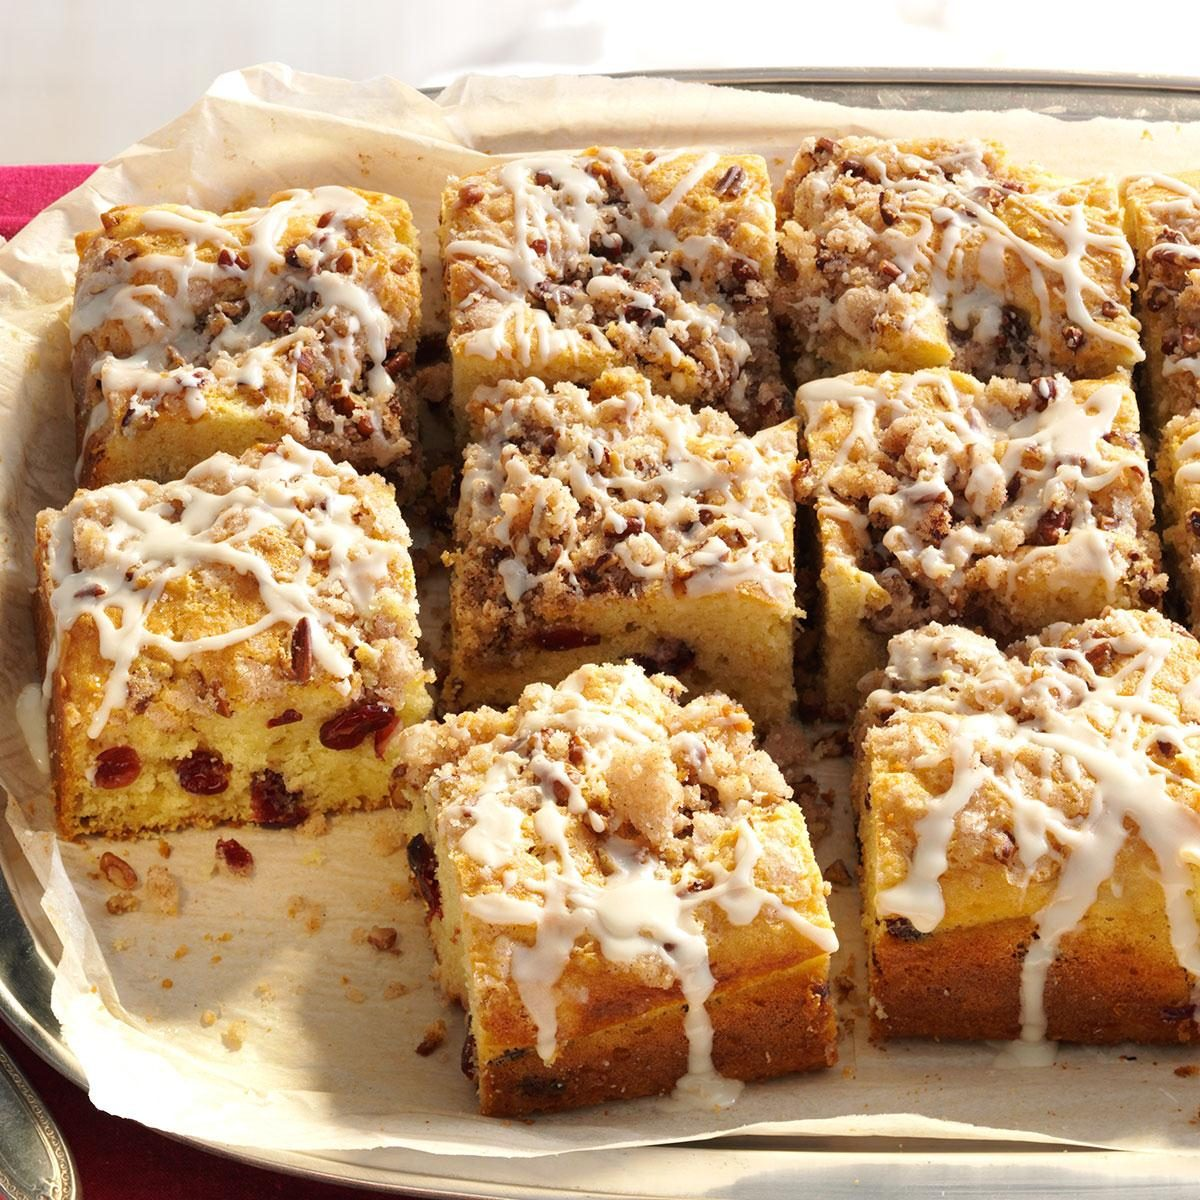 Egg Nog Using Heavy Cream: Overnight Cranberry-Eggnog Coffee Cake Recipe